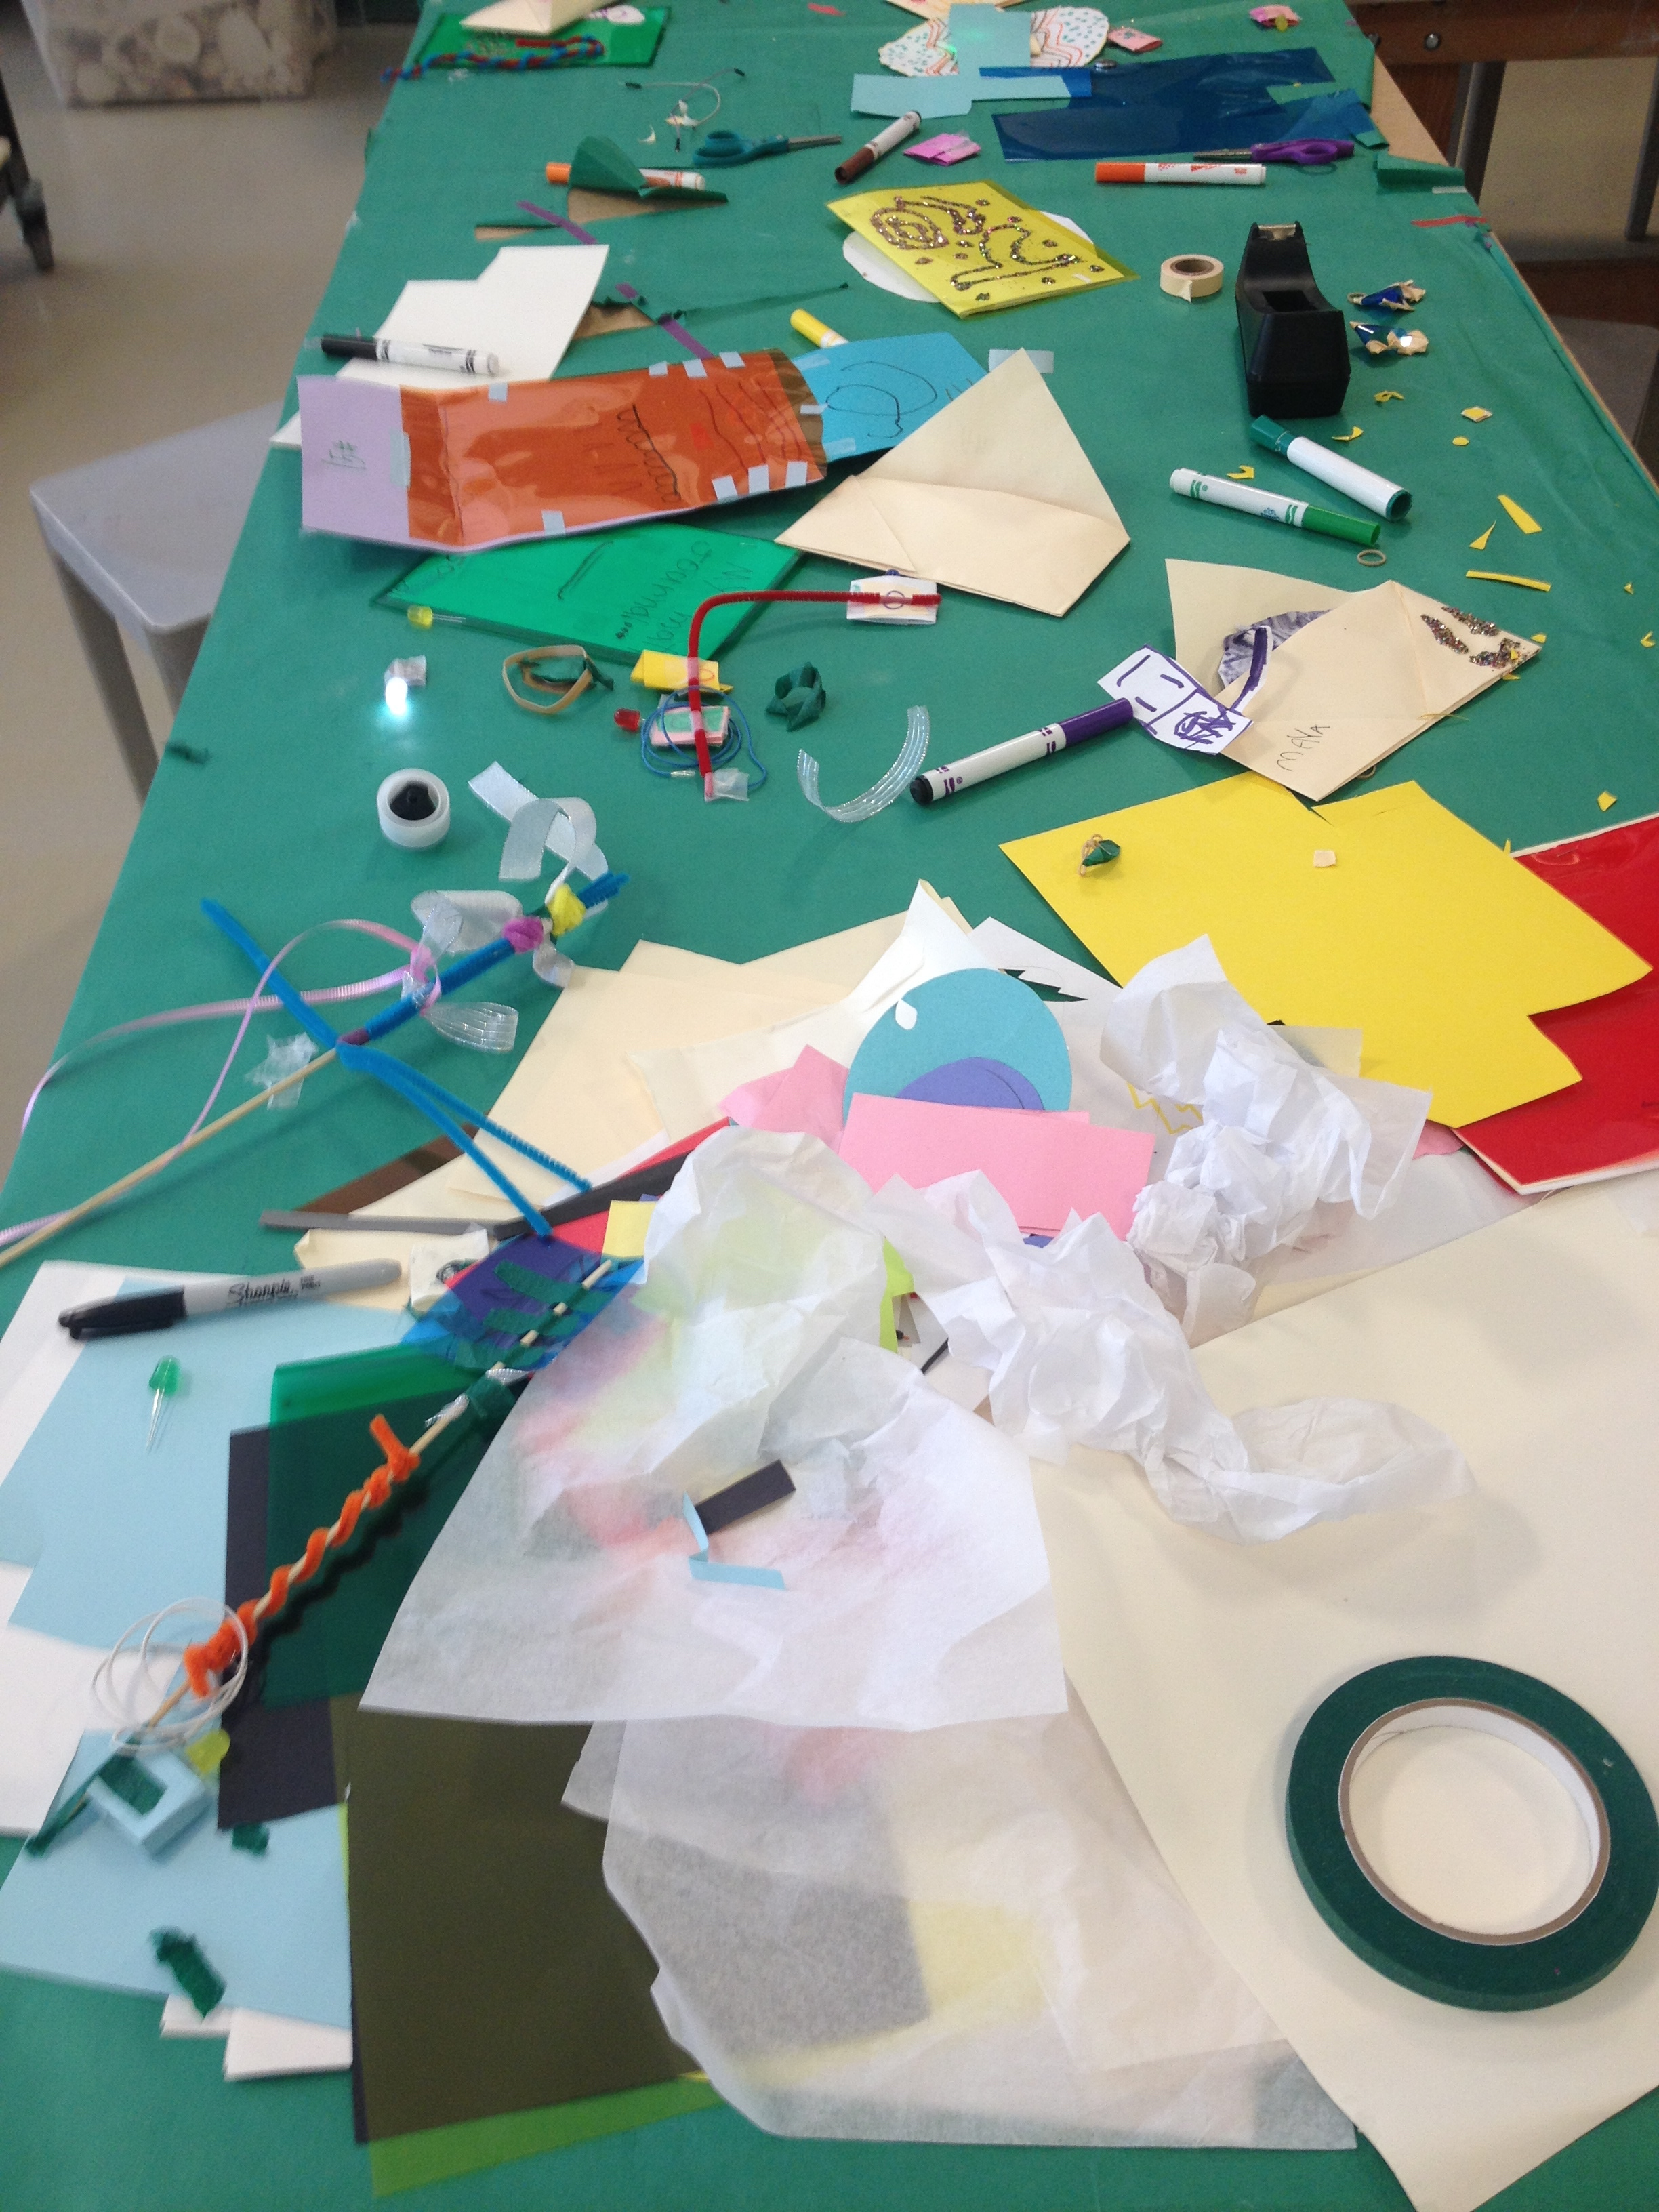 Two Weeks of Electonic Art with Youth at the Palo Alto Art Center